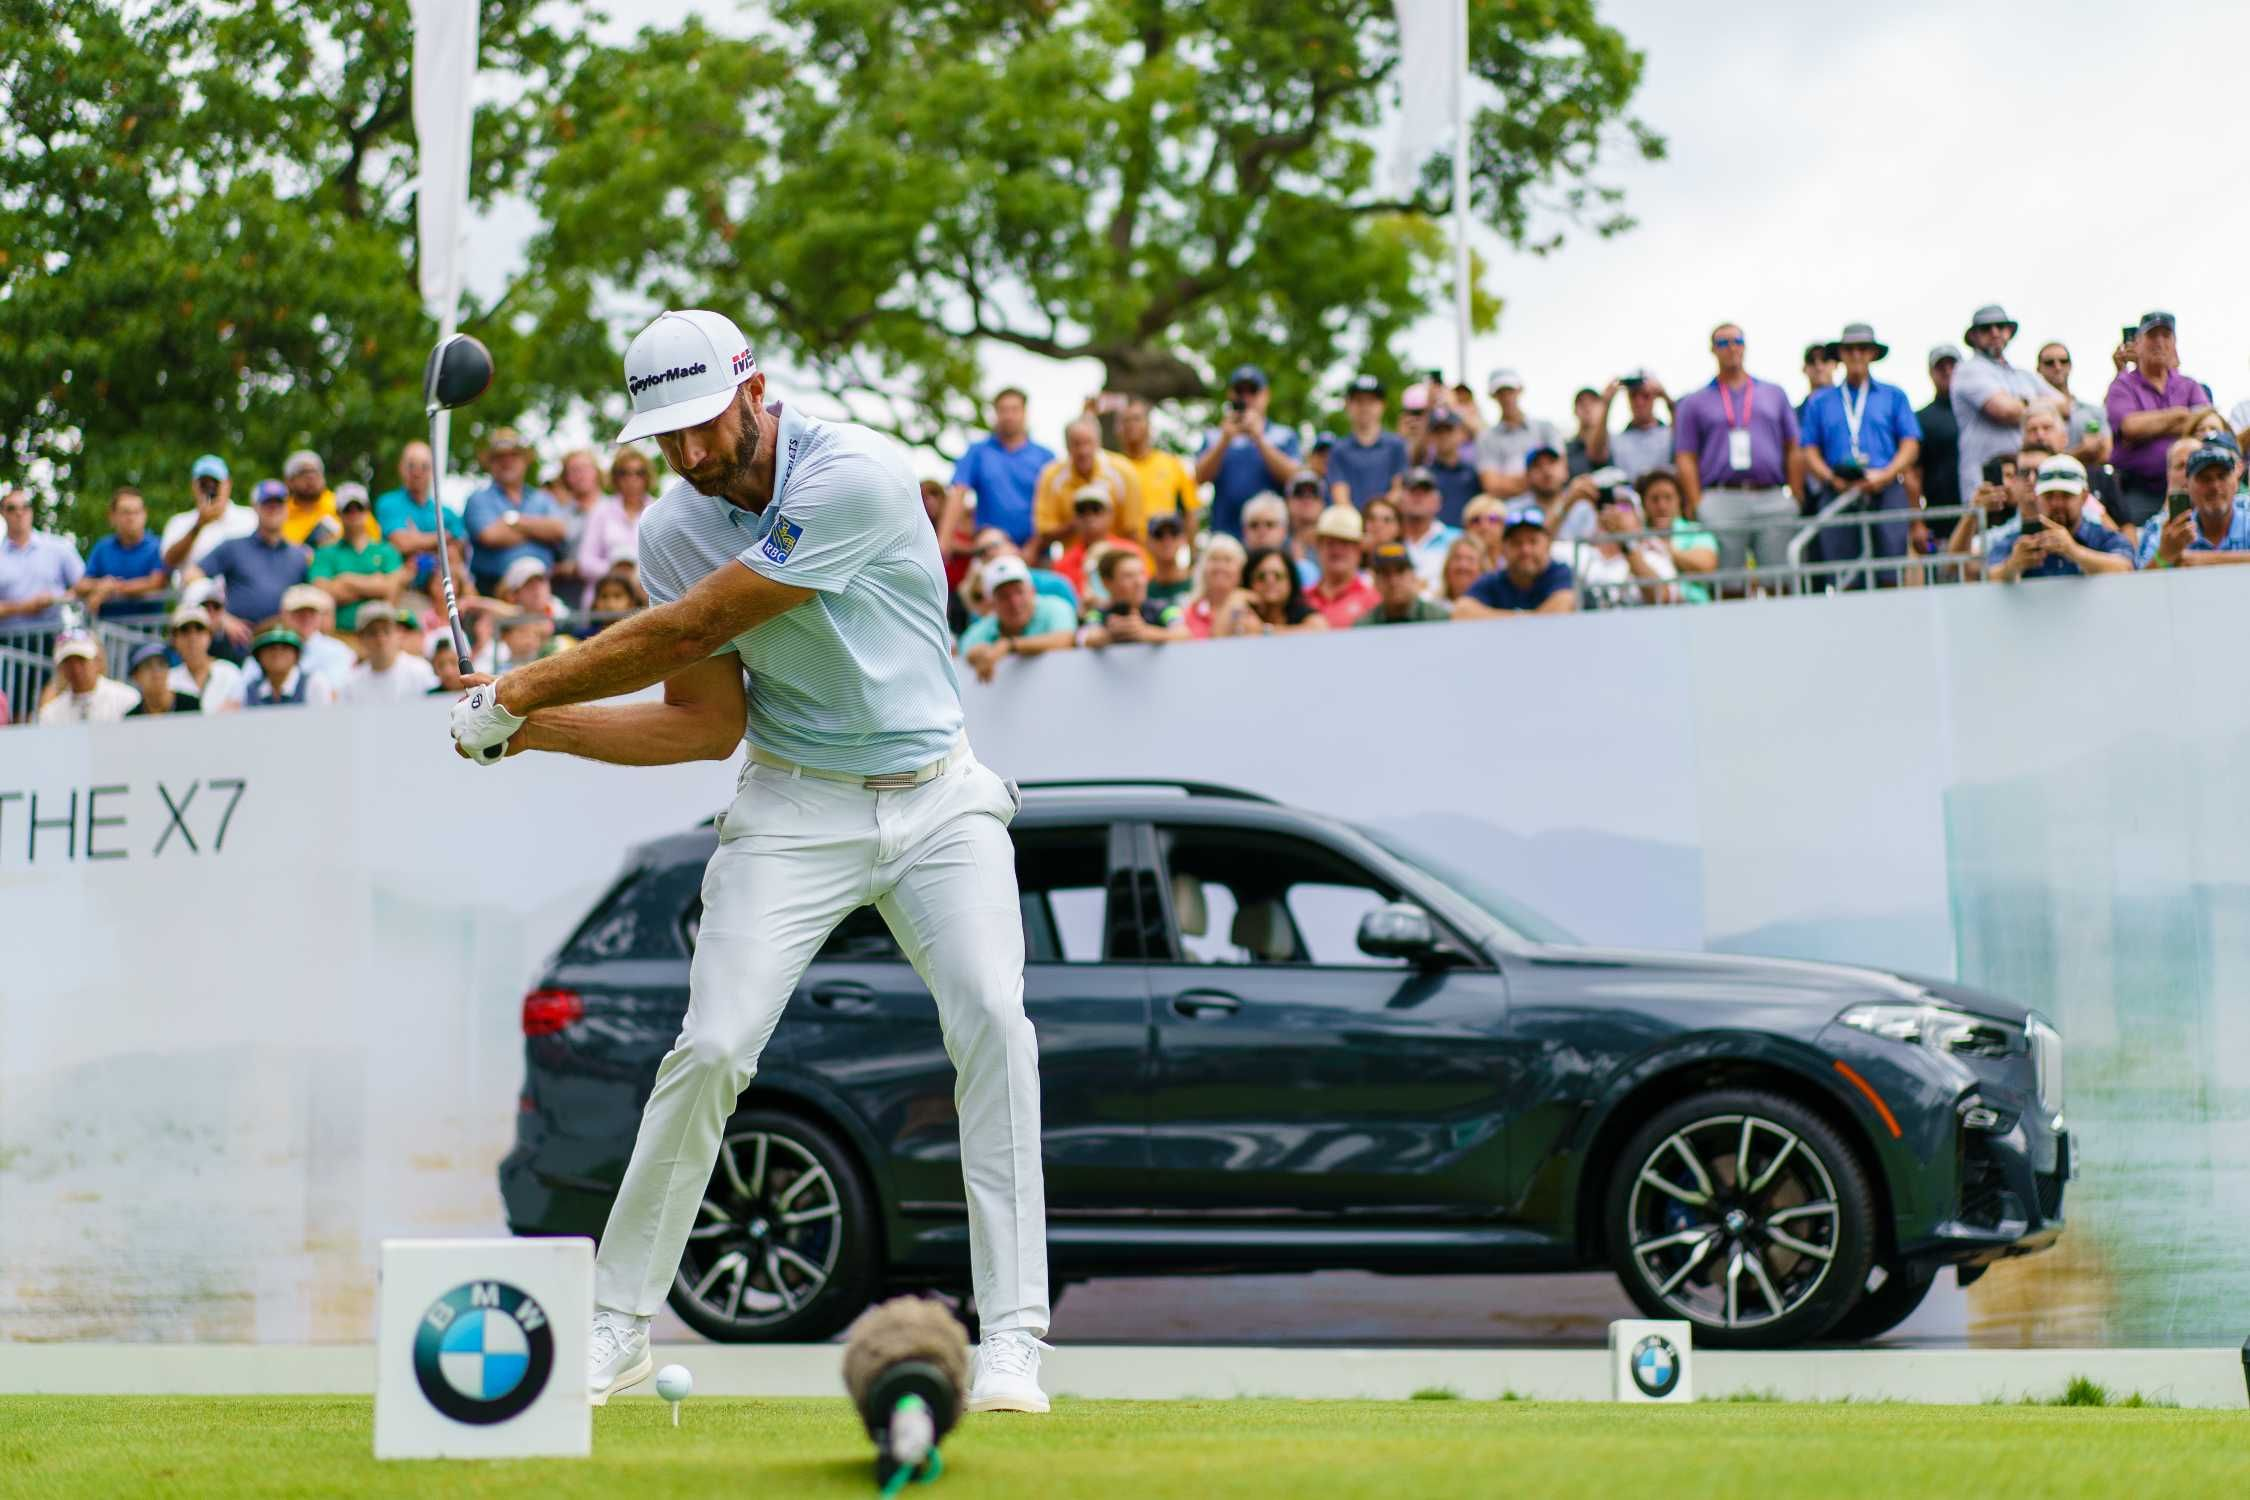 Bmw Championship Bmw Extends Title Partnership With The Prestigious Pga Tour Playoff Tournament For Another Three Years The Pga Tour Pga Bmw